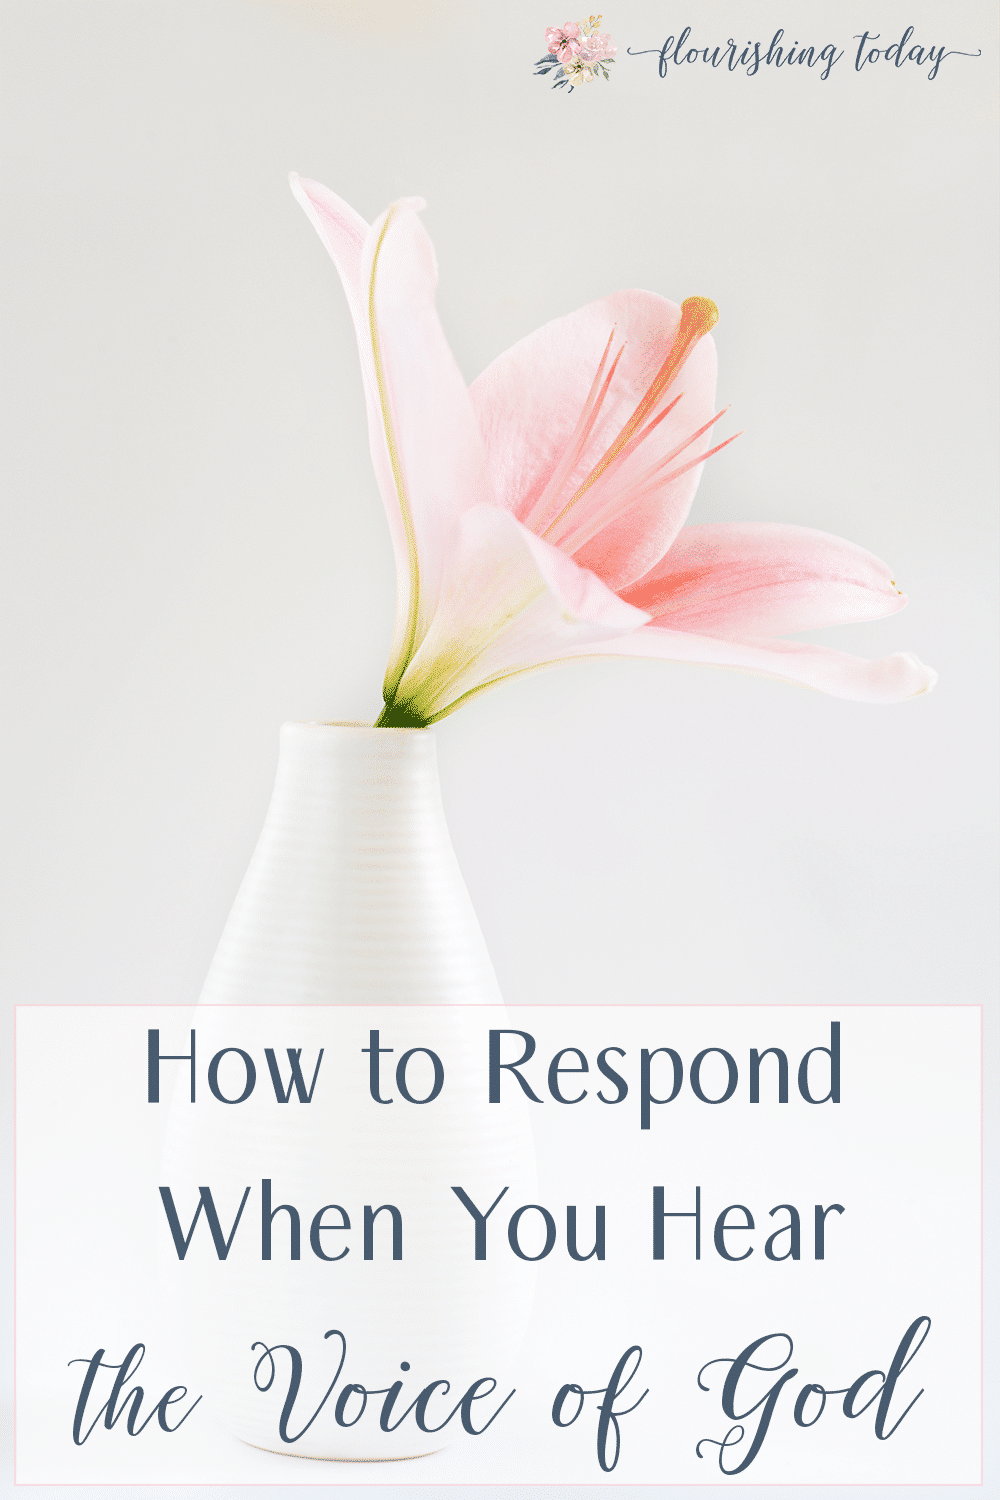 Do you feel like God is speaking to you, but you are afraid to respond? Fear can hold us back from the greatness God has for us. Here's a few tips on how to respond when you hear the voice of God. #listen #nofear